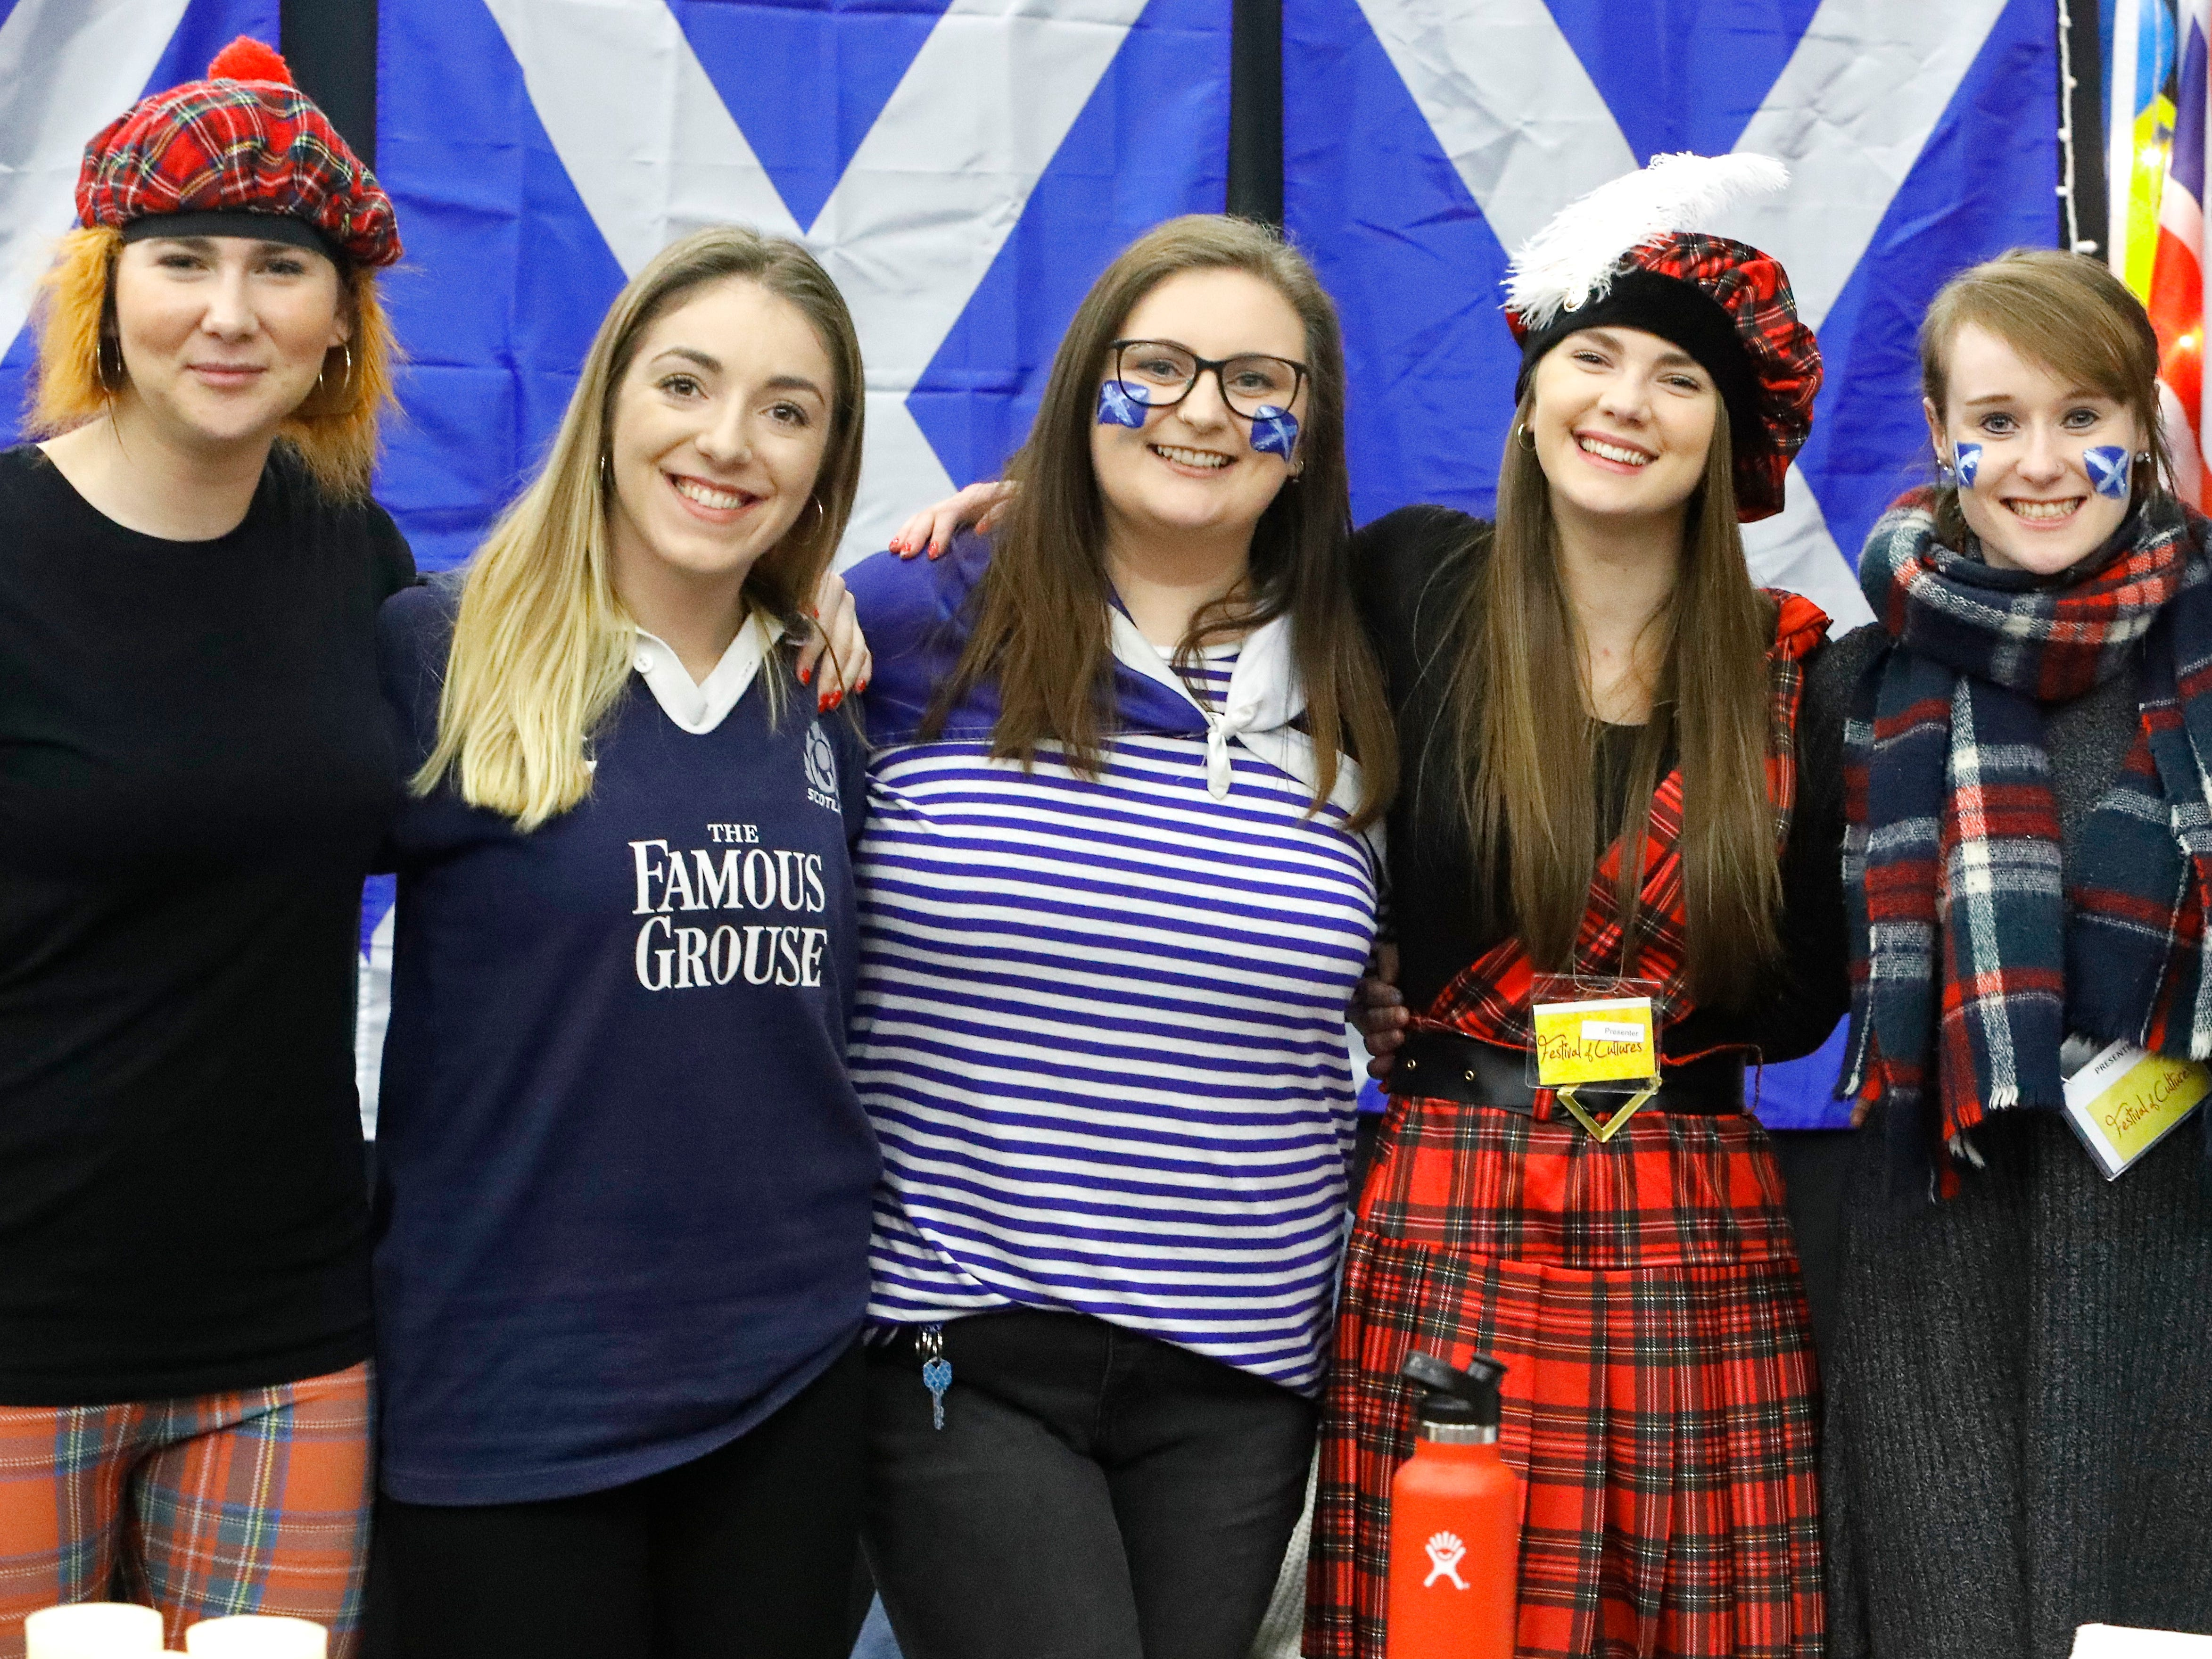 Students from Scotland pose for a picture during the annual Festival of Cultures in the Redding Civic Auditorium on Feb. 9, 2019.